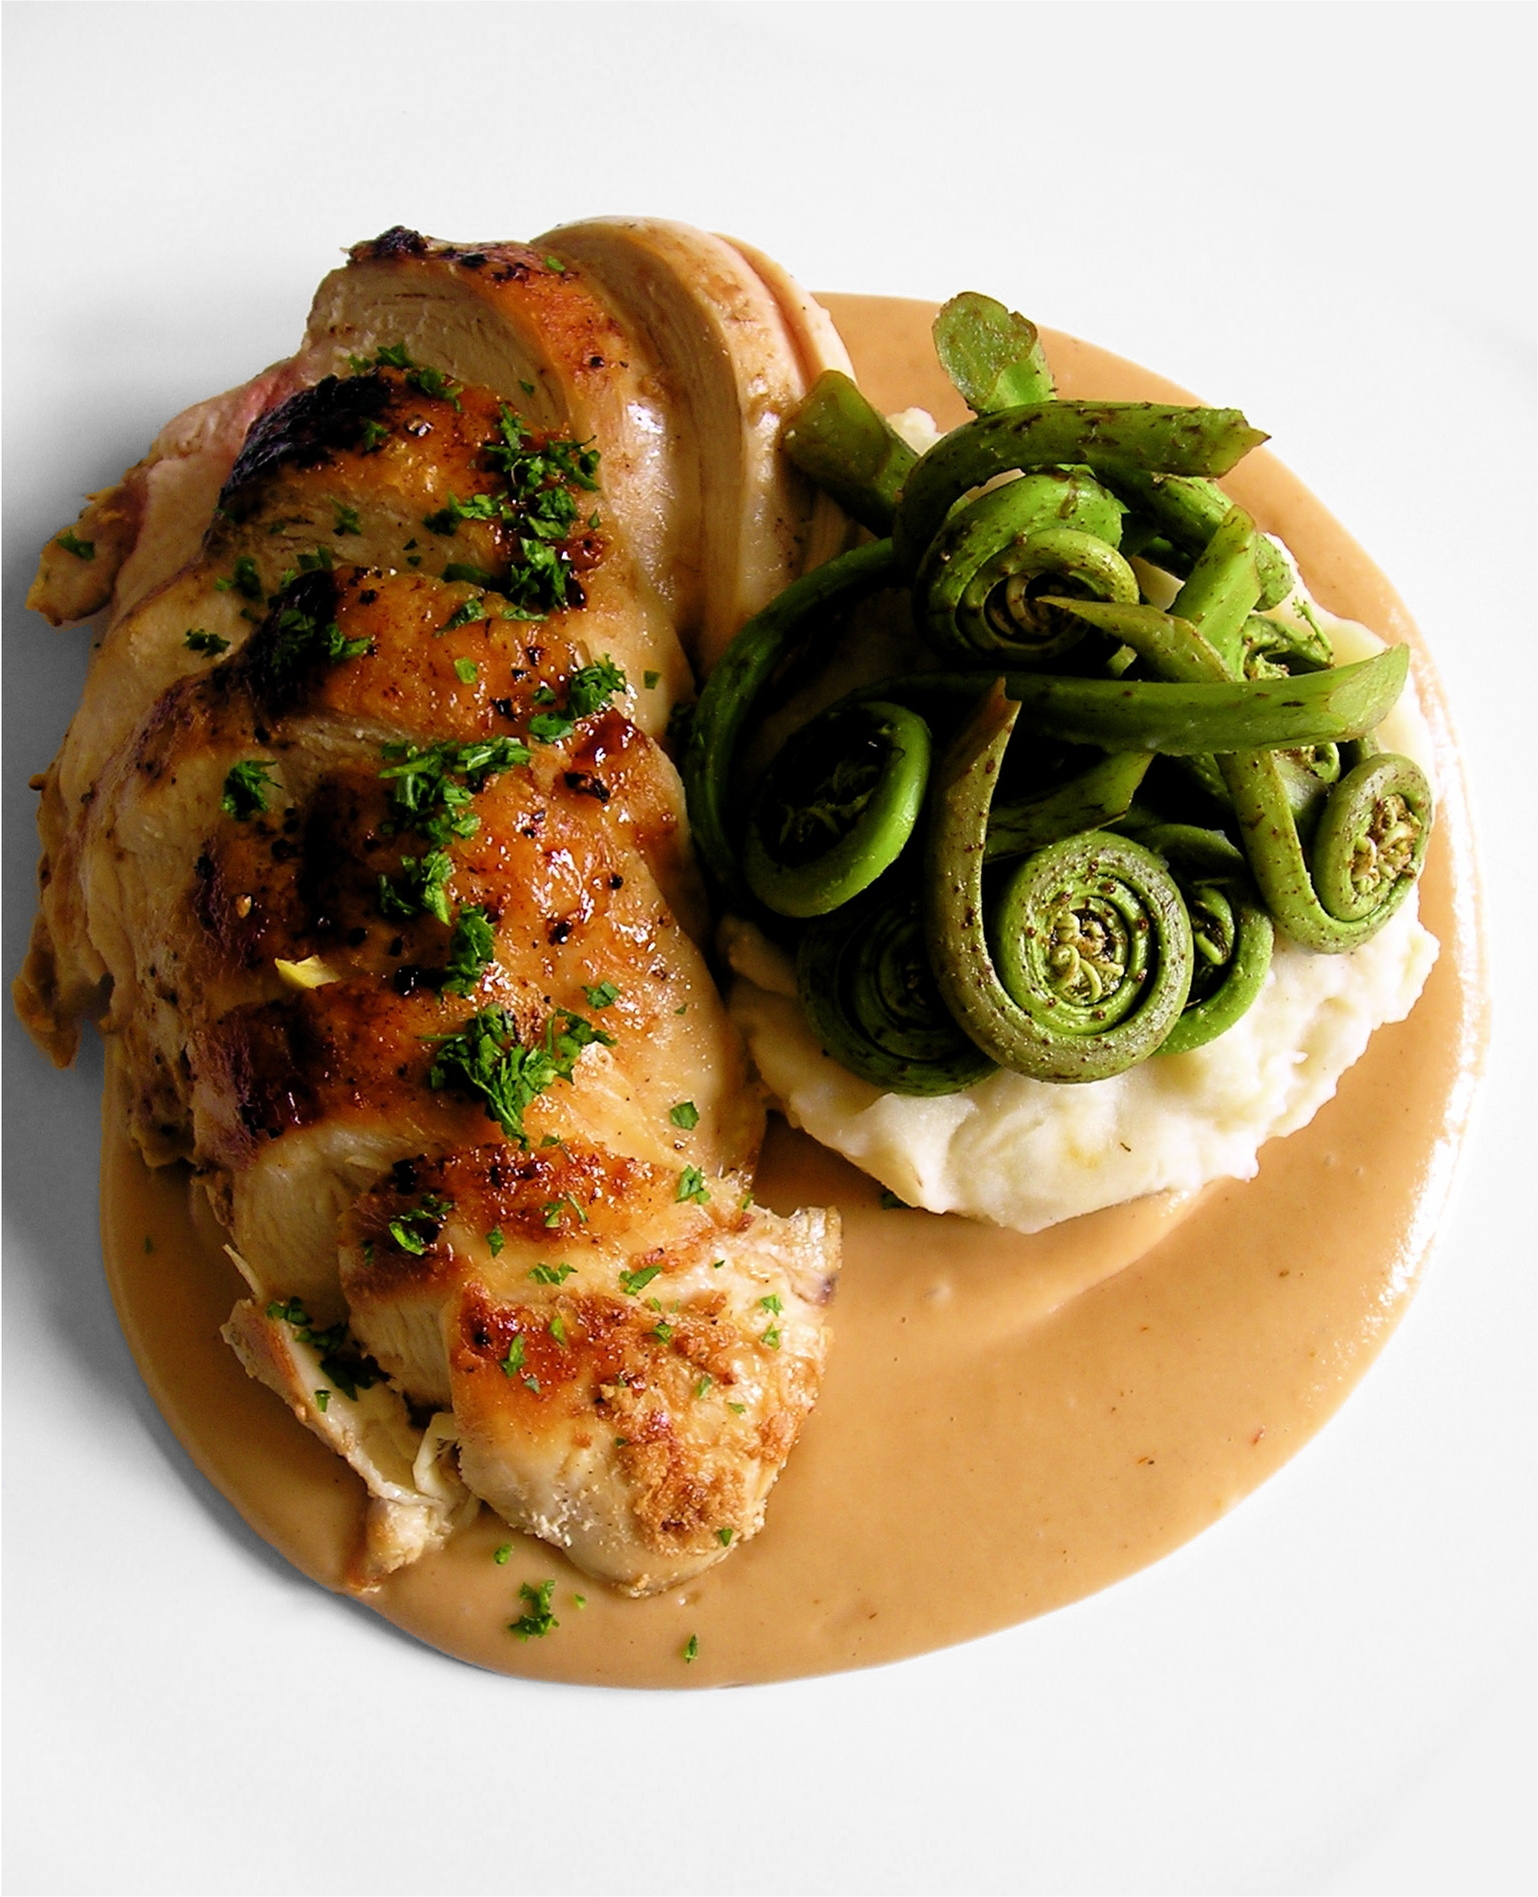 File:Pan Roasted Chicken Breasts, Garlic Mashed Potatoes, Fiddlehead ...